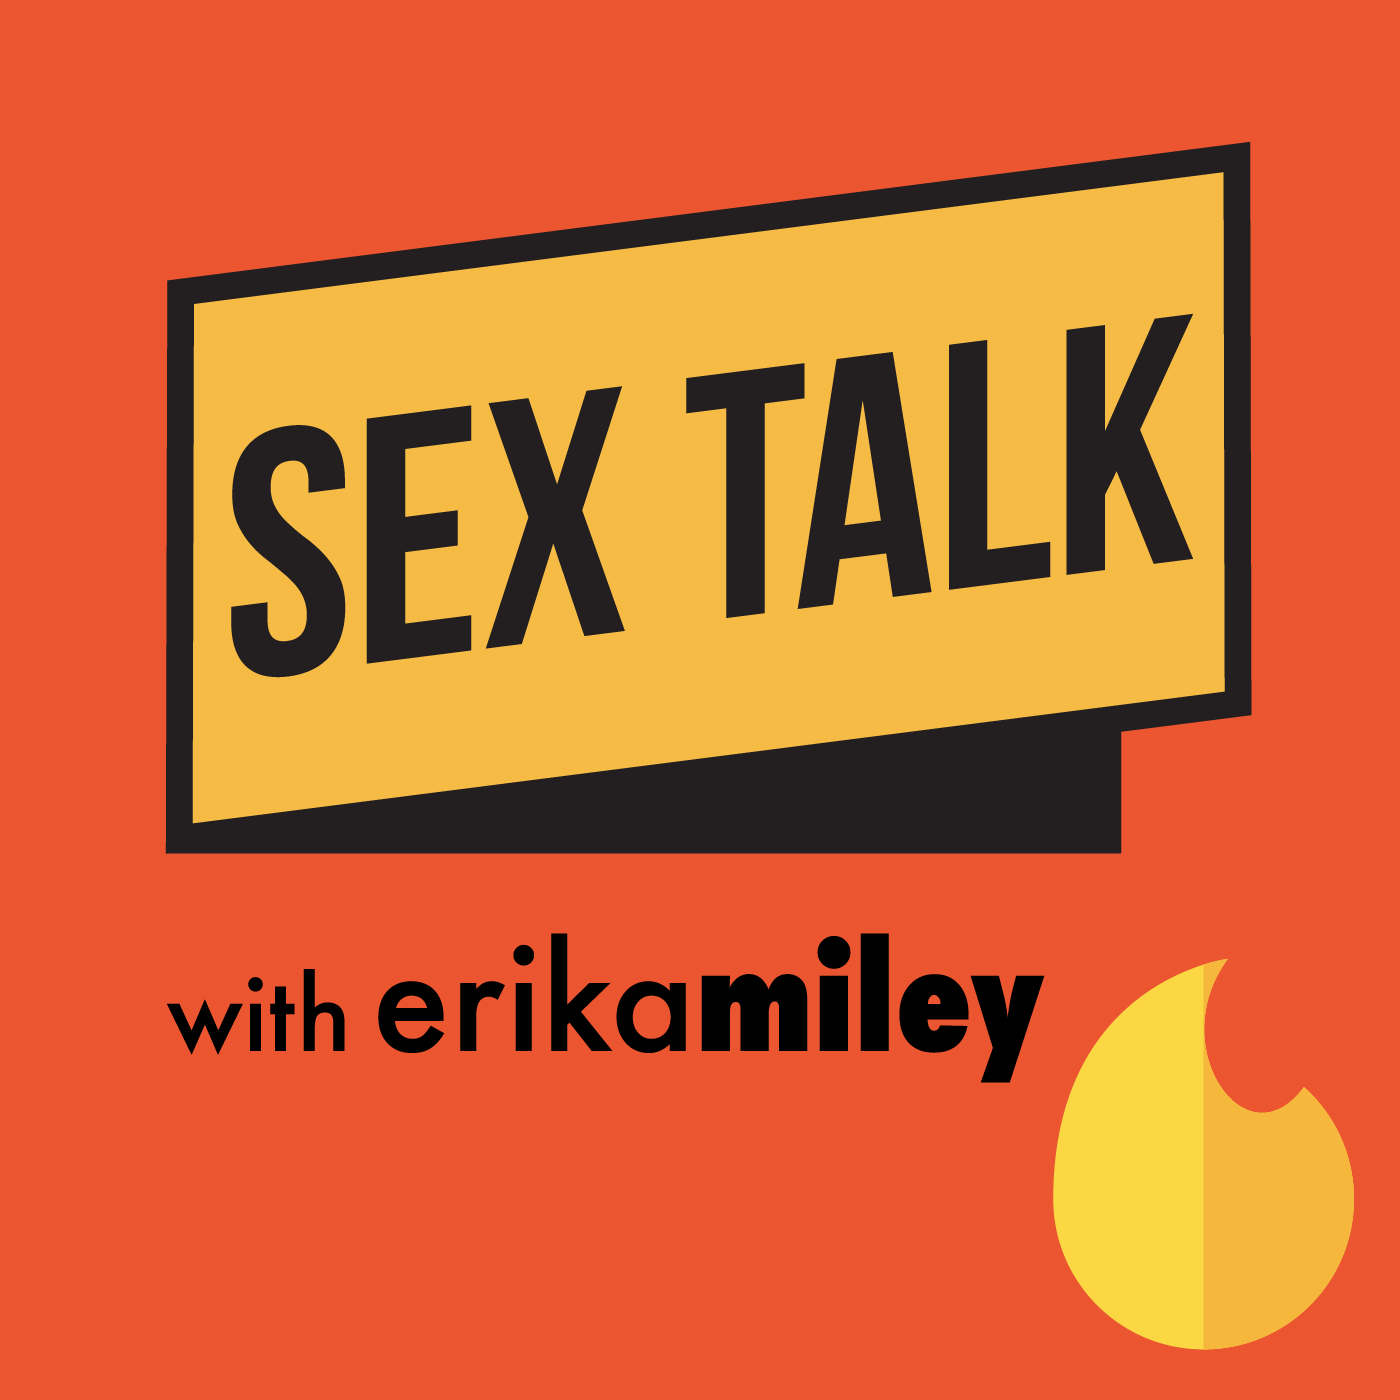 Sex Talk with Erika Miley